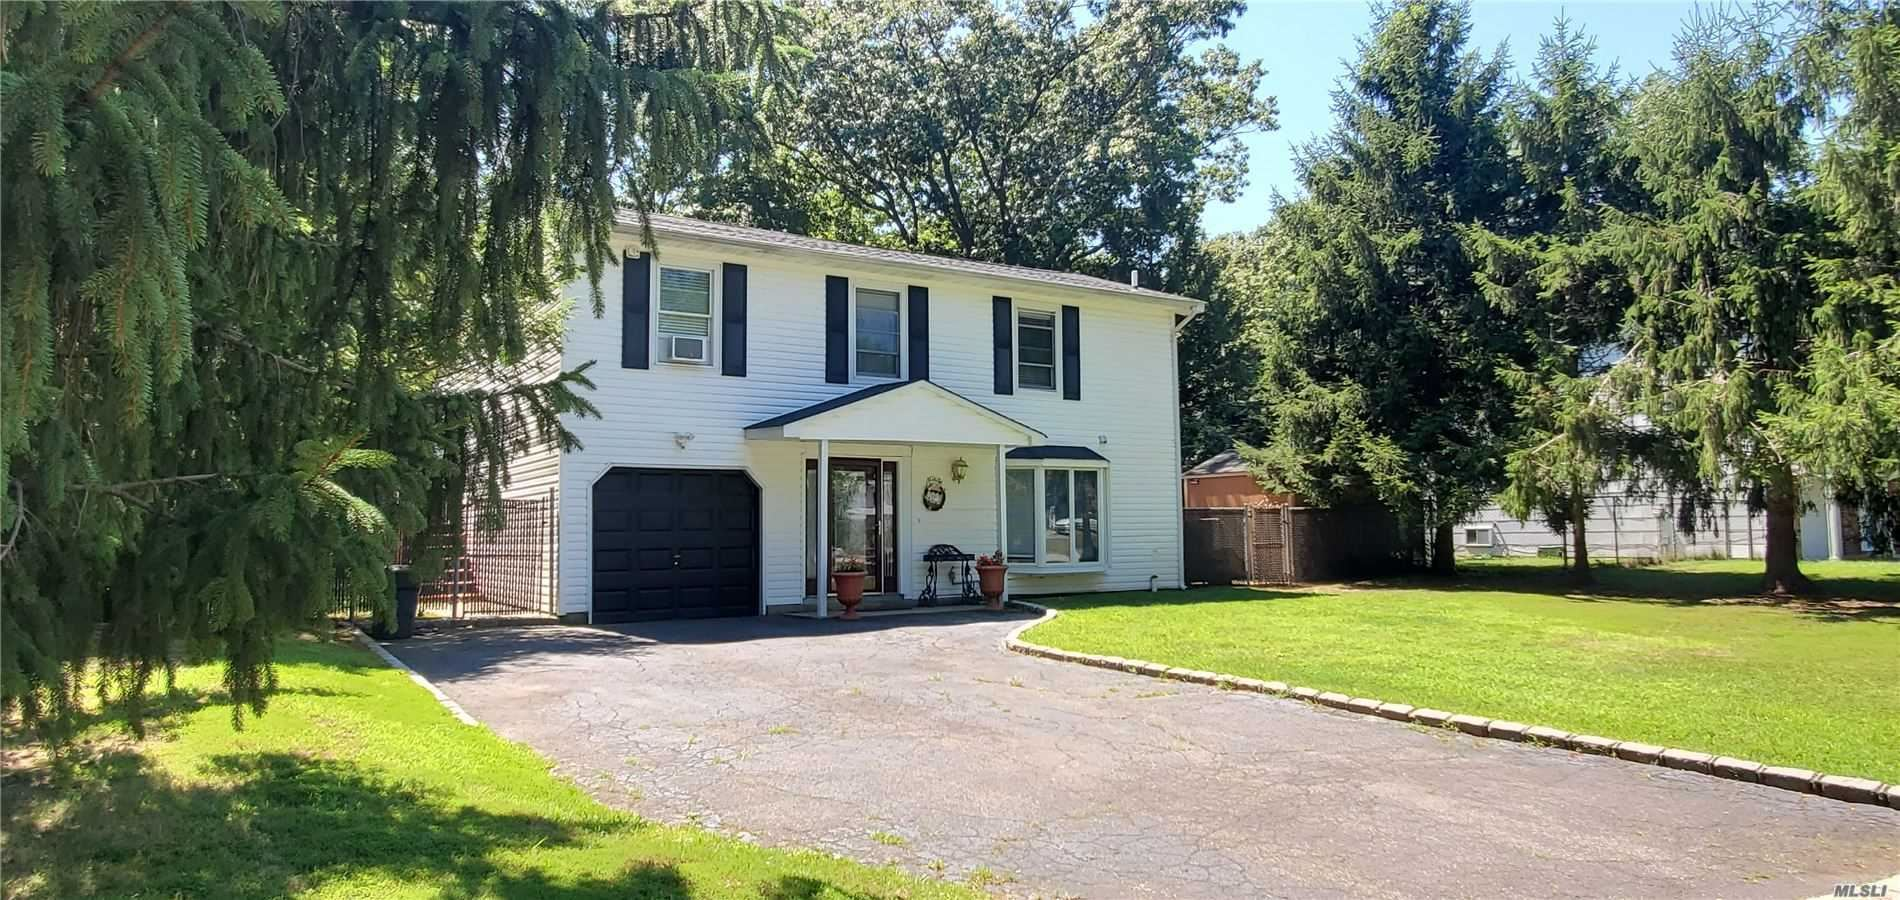 10 River Road, Middle Island, NY 11953 - MLS#: 3234376